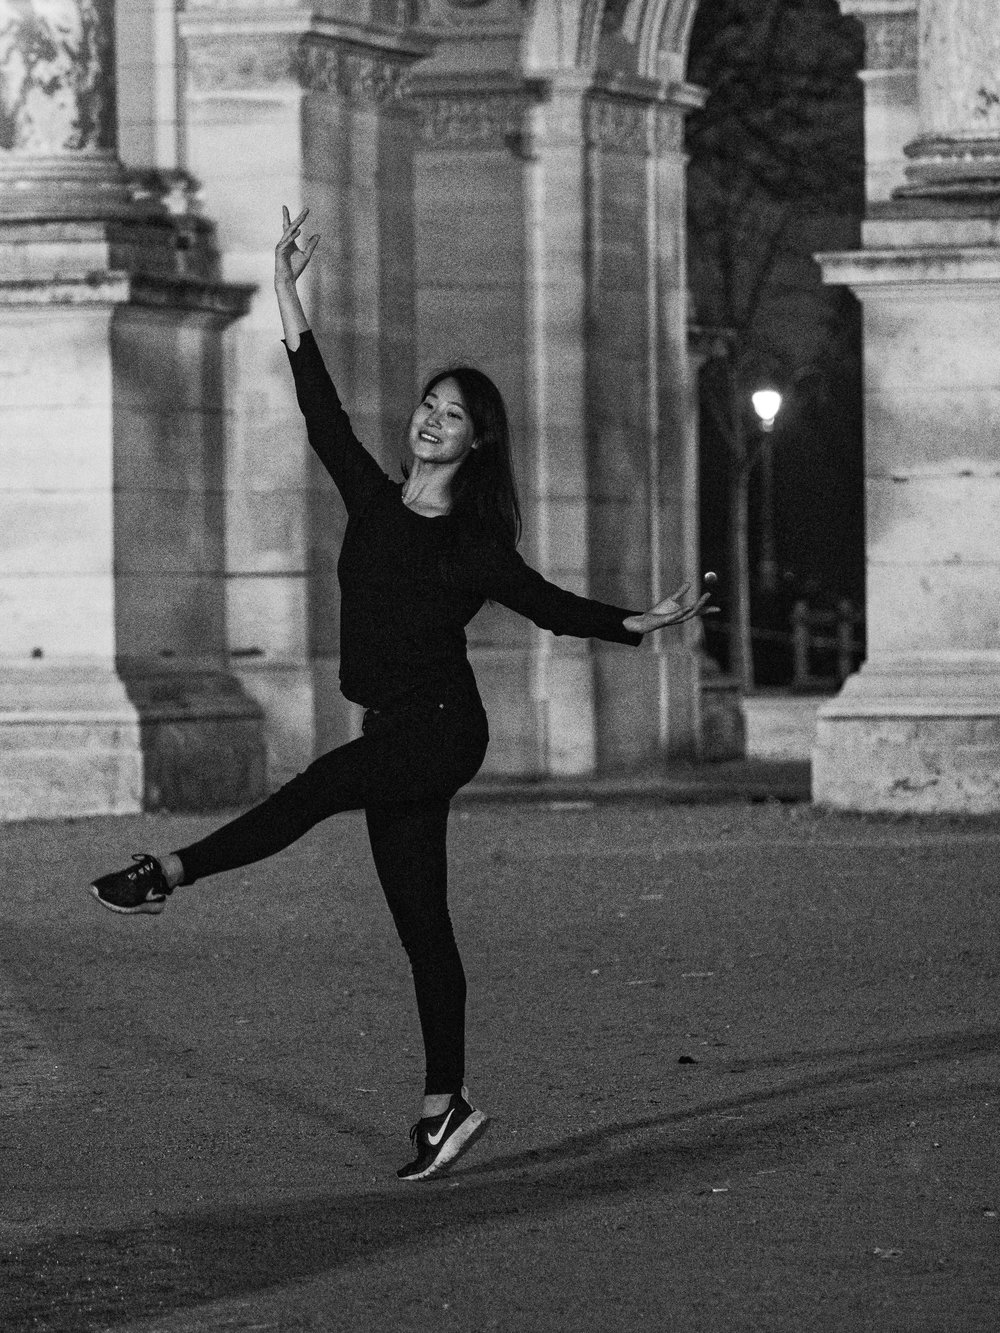 Dancer in Front of the Arc de Triomphe du Carrousel